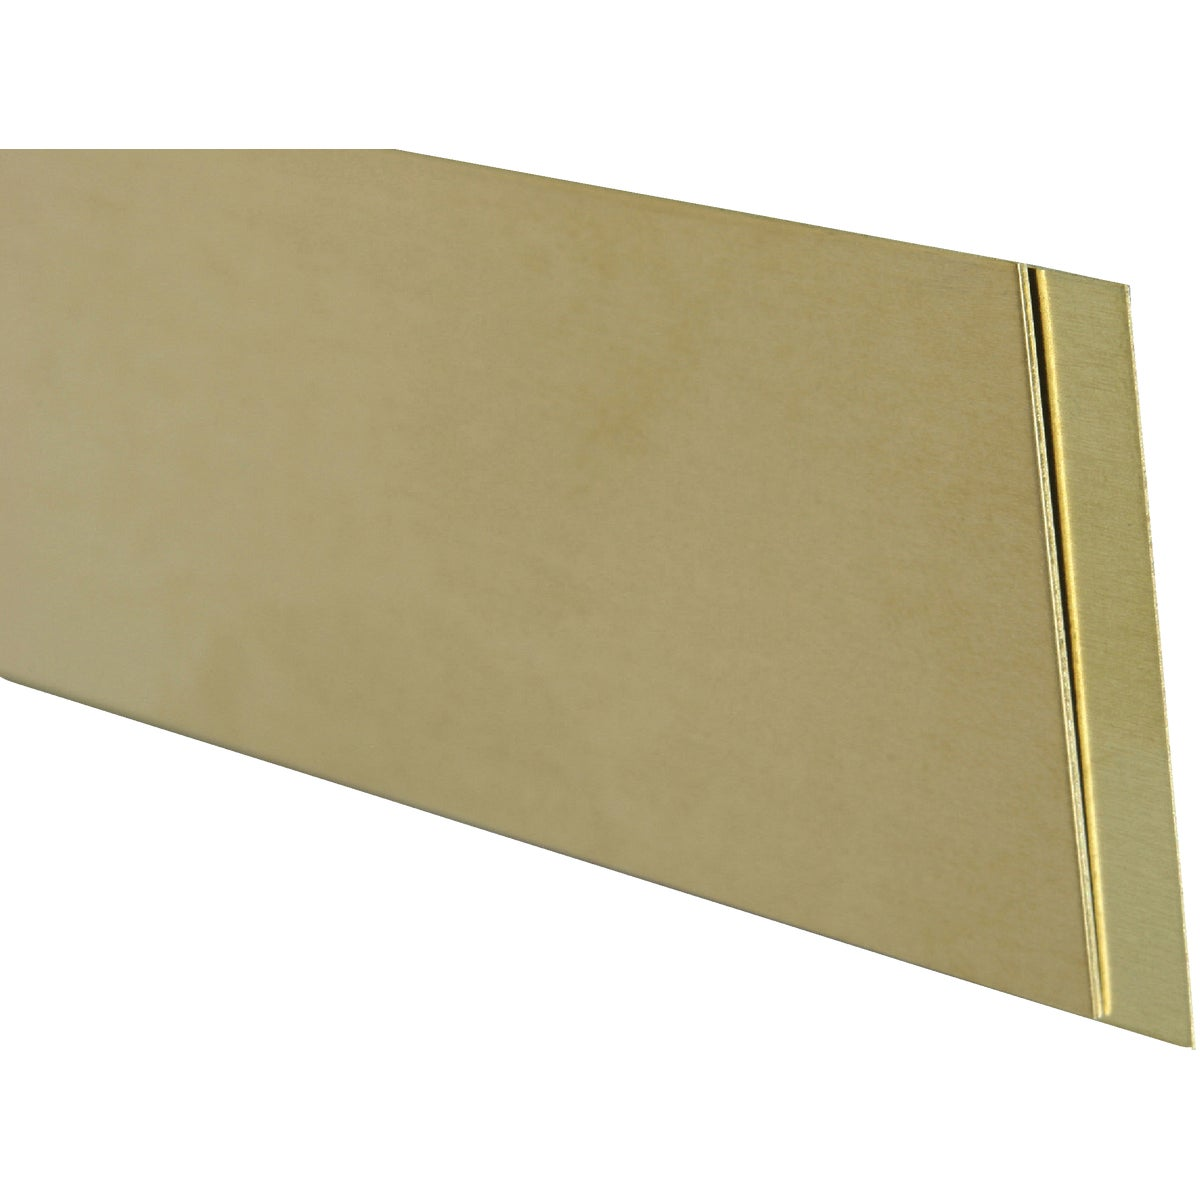 .064X1/2X12 BRASS STRIP - 8246 by K&s Precision Metals